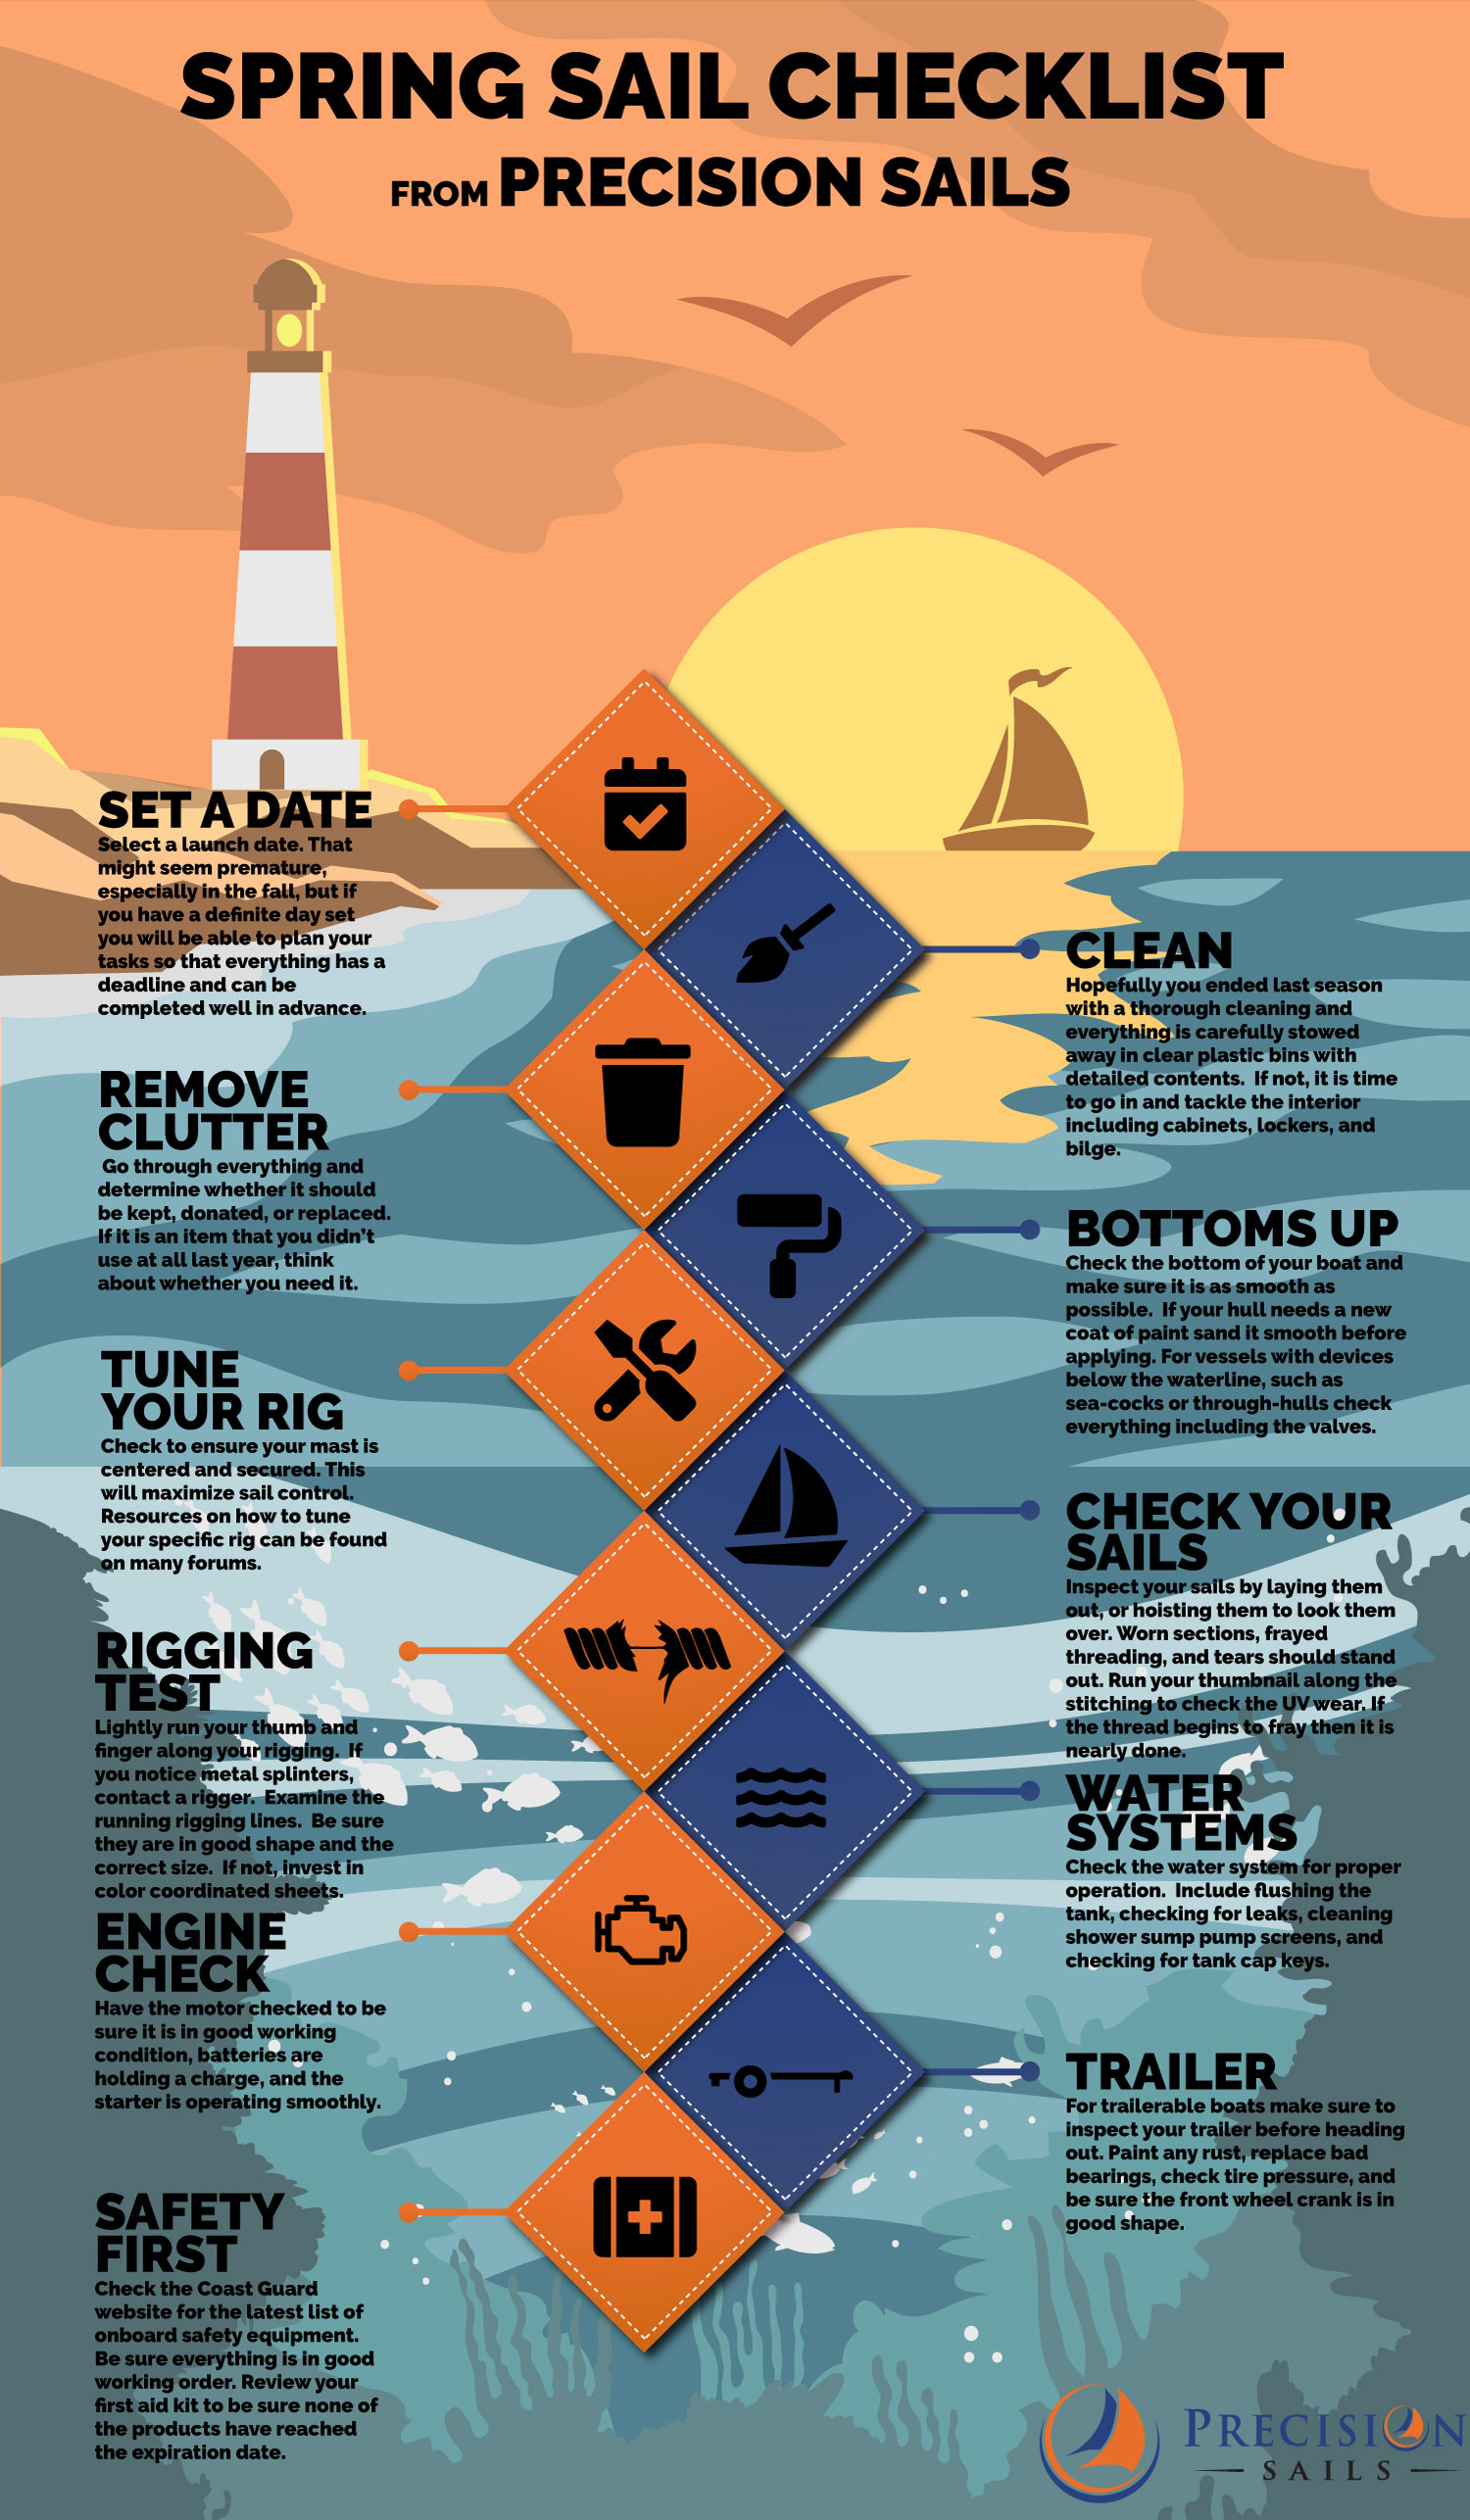 spring sailing checklist infographic containing information on getting your sailboat ready for spring